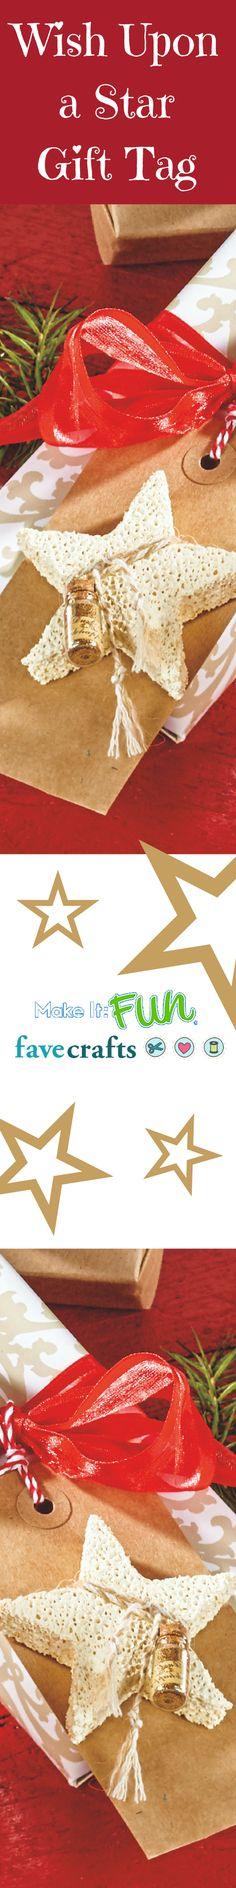 When you wish upon a star... @makeitfuncrafts #FloraCraftChristmas